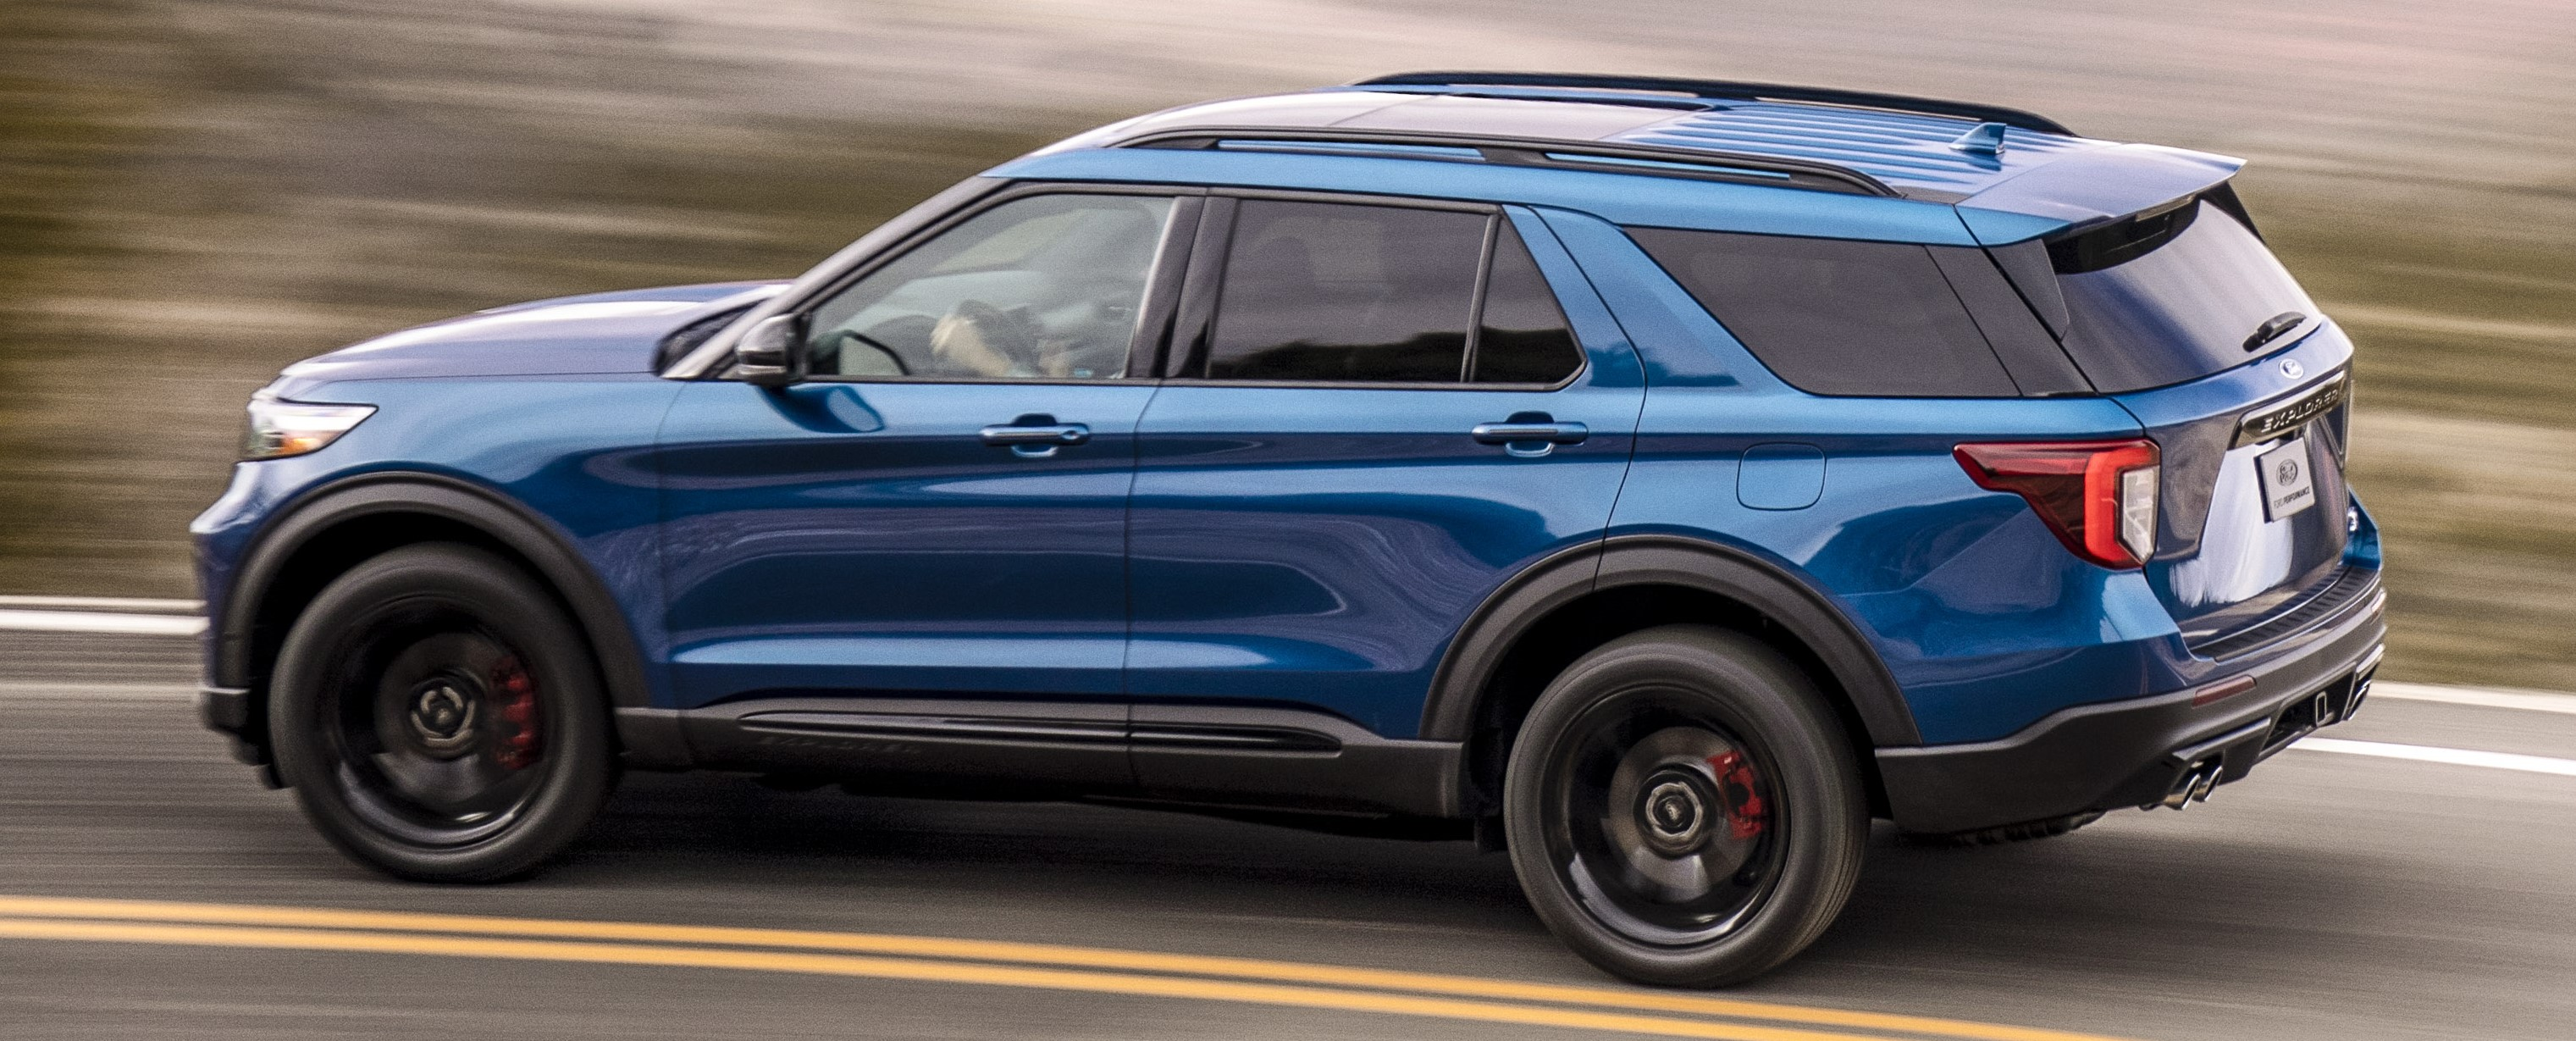 2020 Explorer ST profile1.jpg